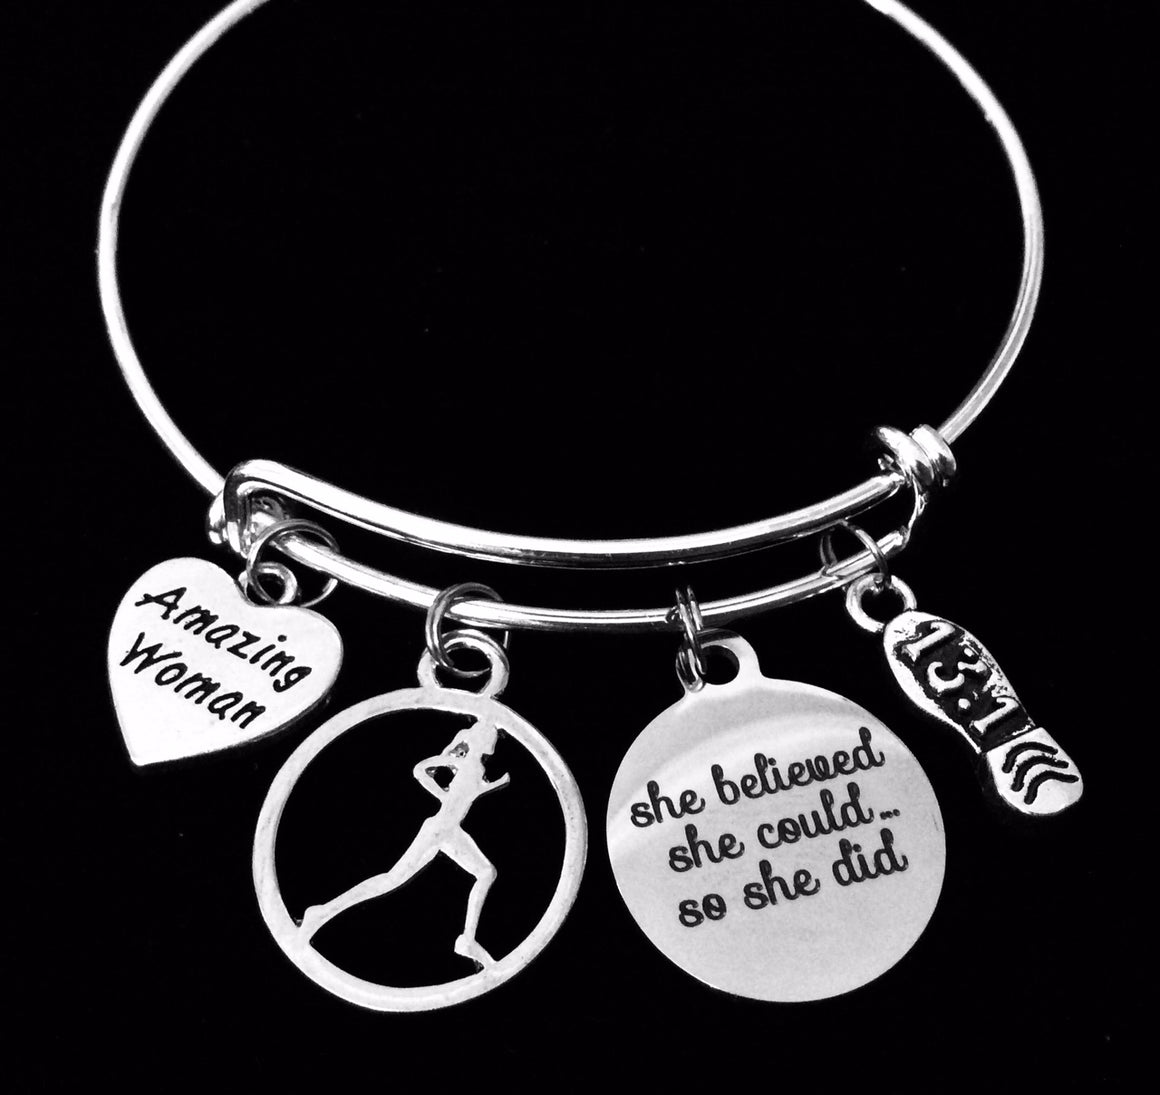 26.2 She Believed Marathon Runner Silver Expandable Charm Bracelet Adjustable Wire Bangle One Size Fits All Gift Trendy